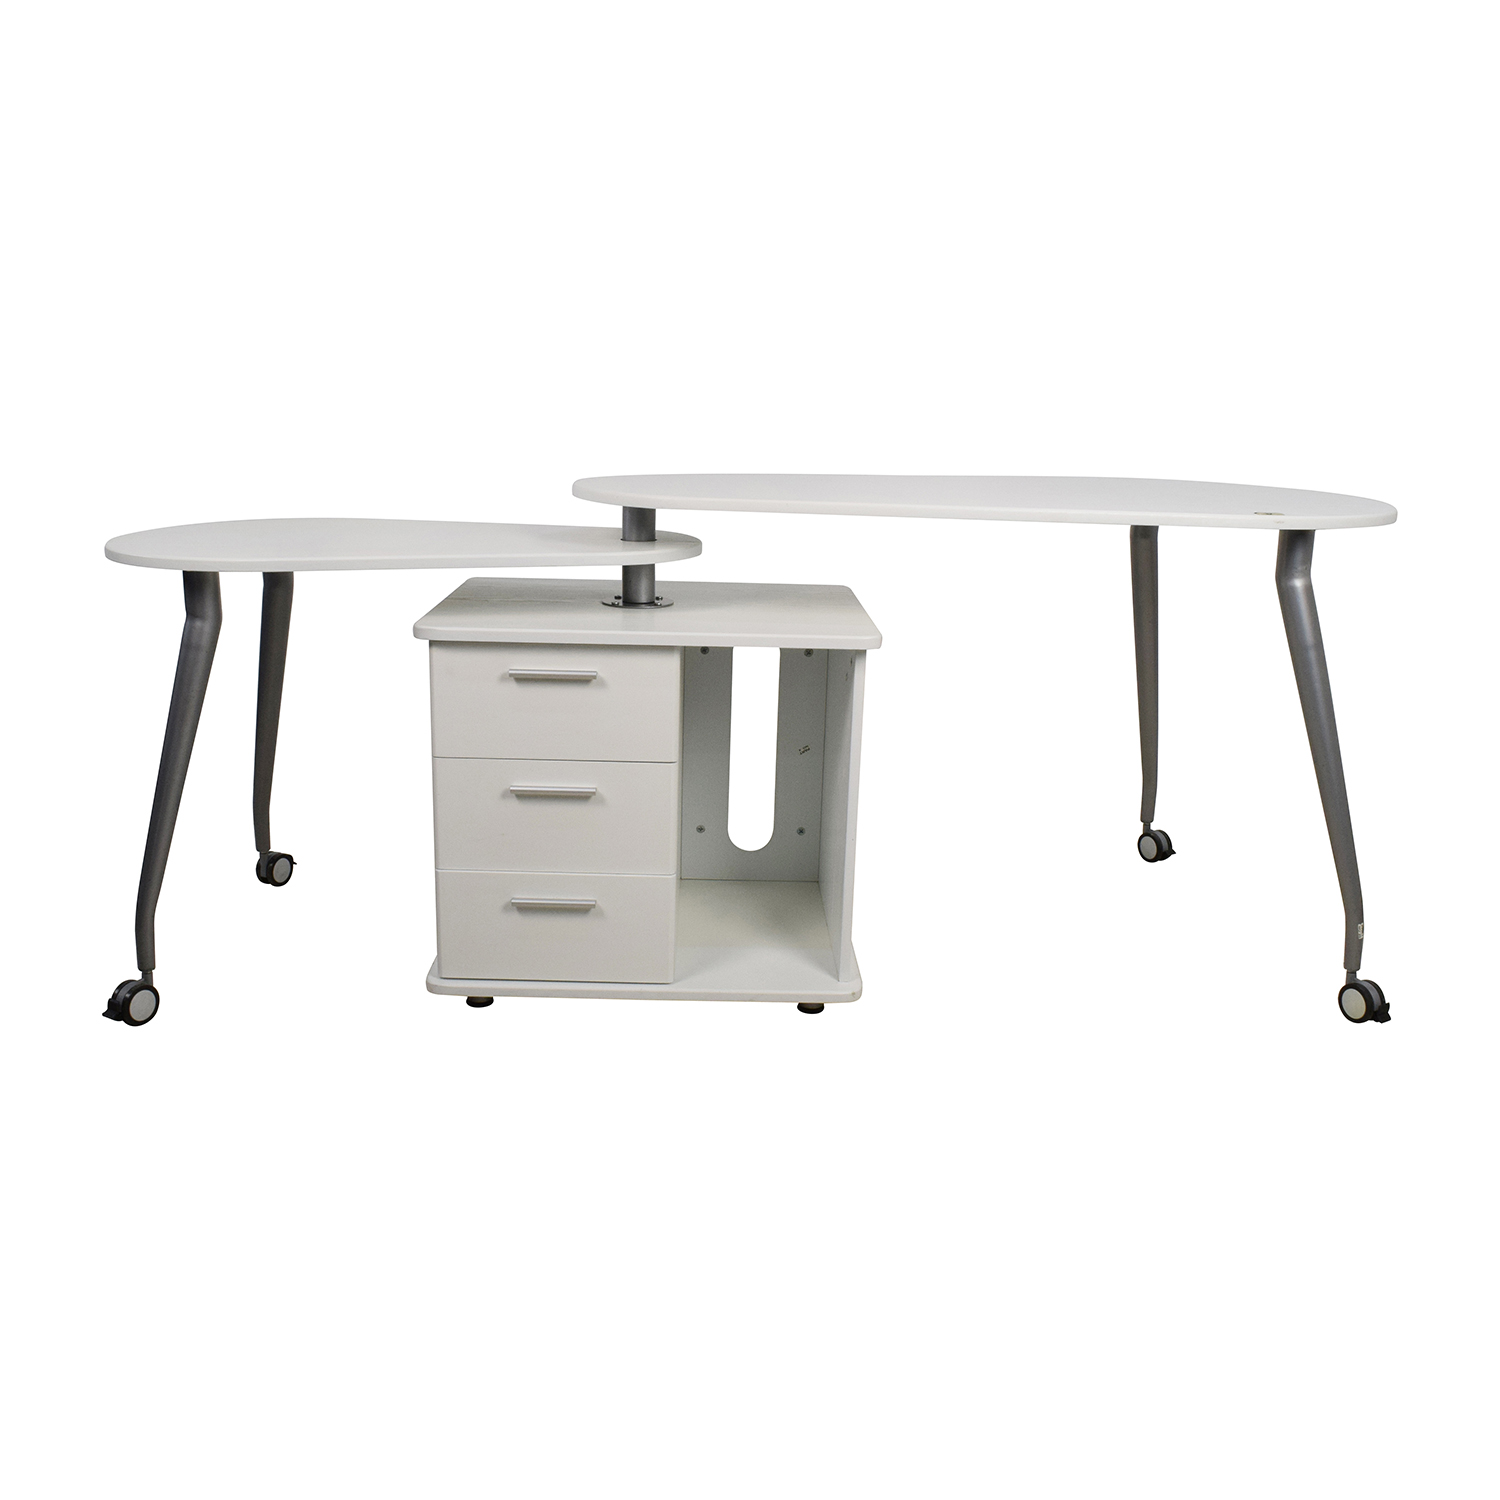 Awe Inspiring 84 Off Techni Mobili White Swivel Desk Tables Download Free Architecture Designs Grimeyleaguecom